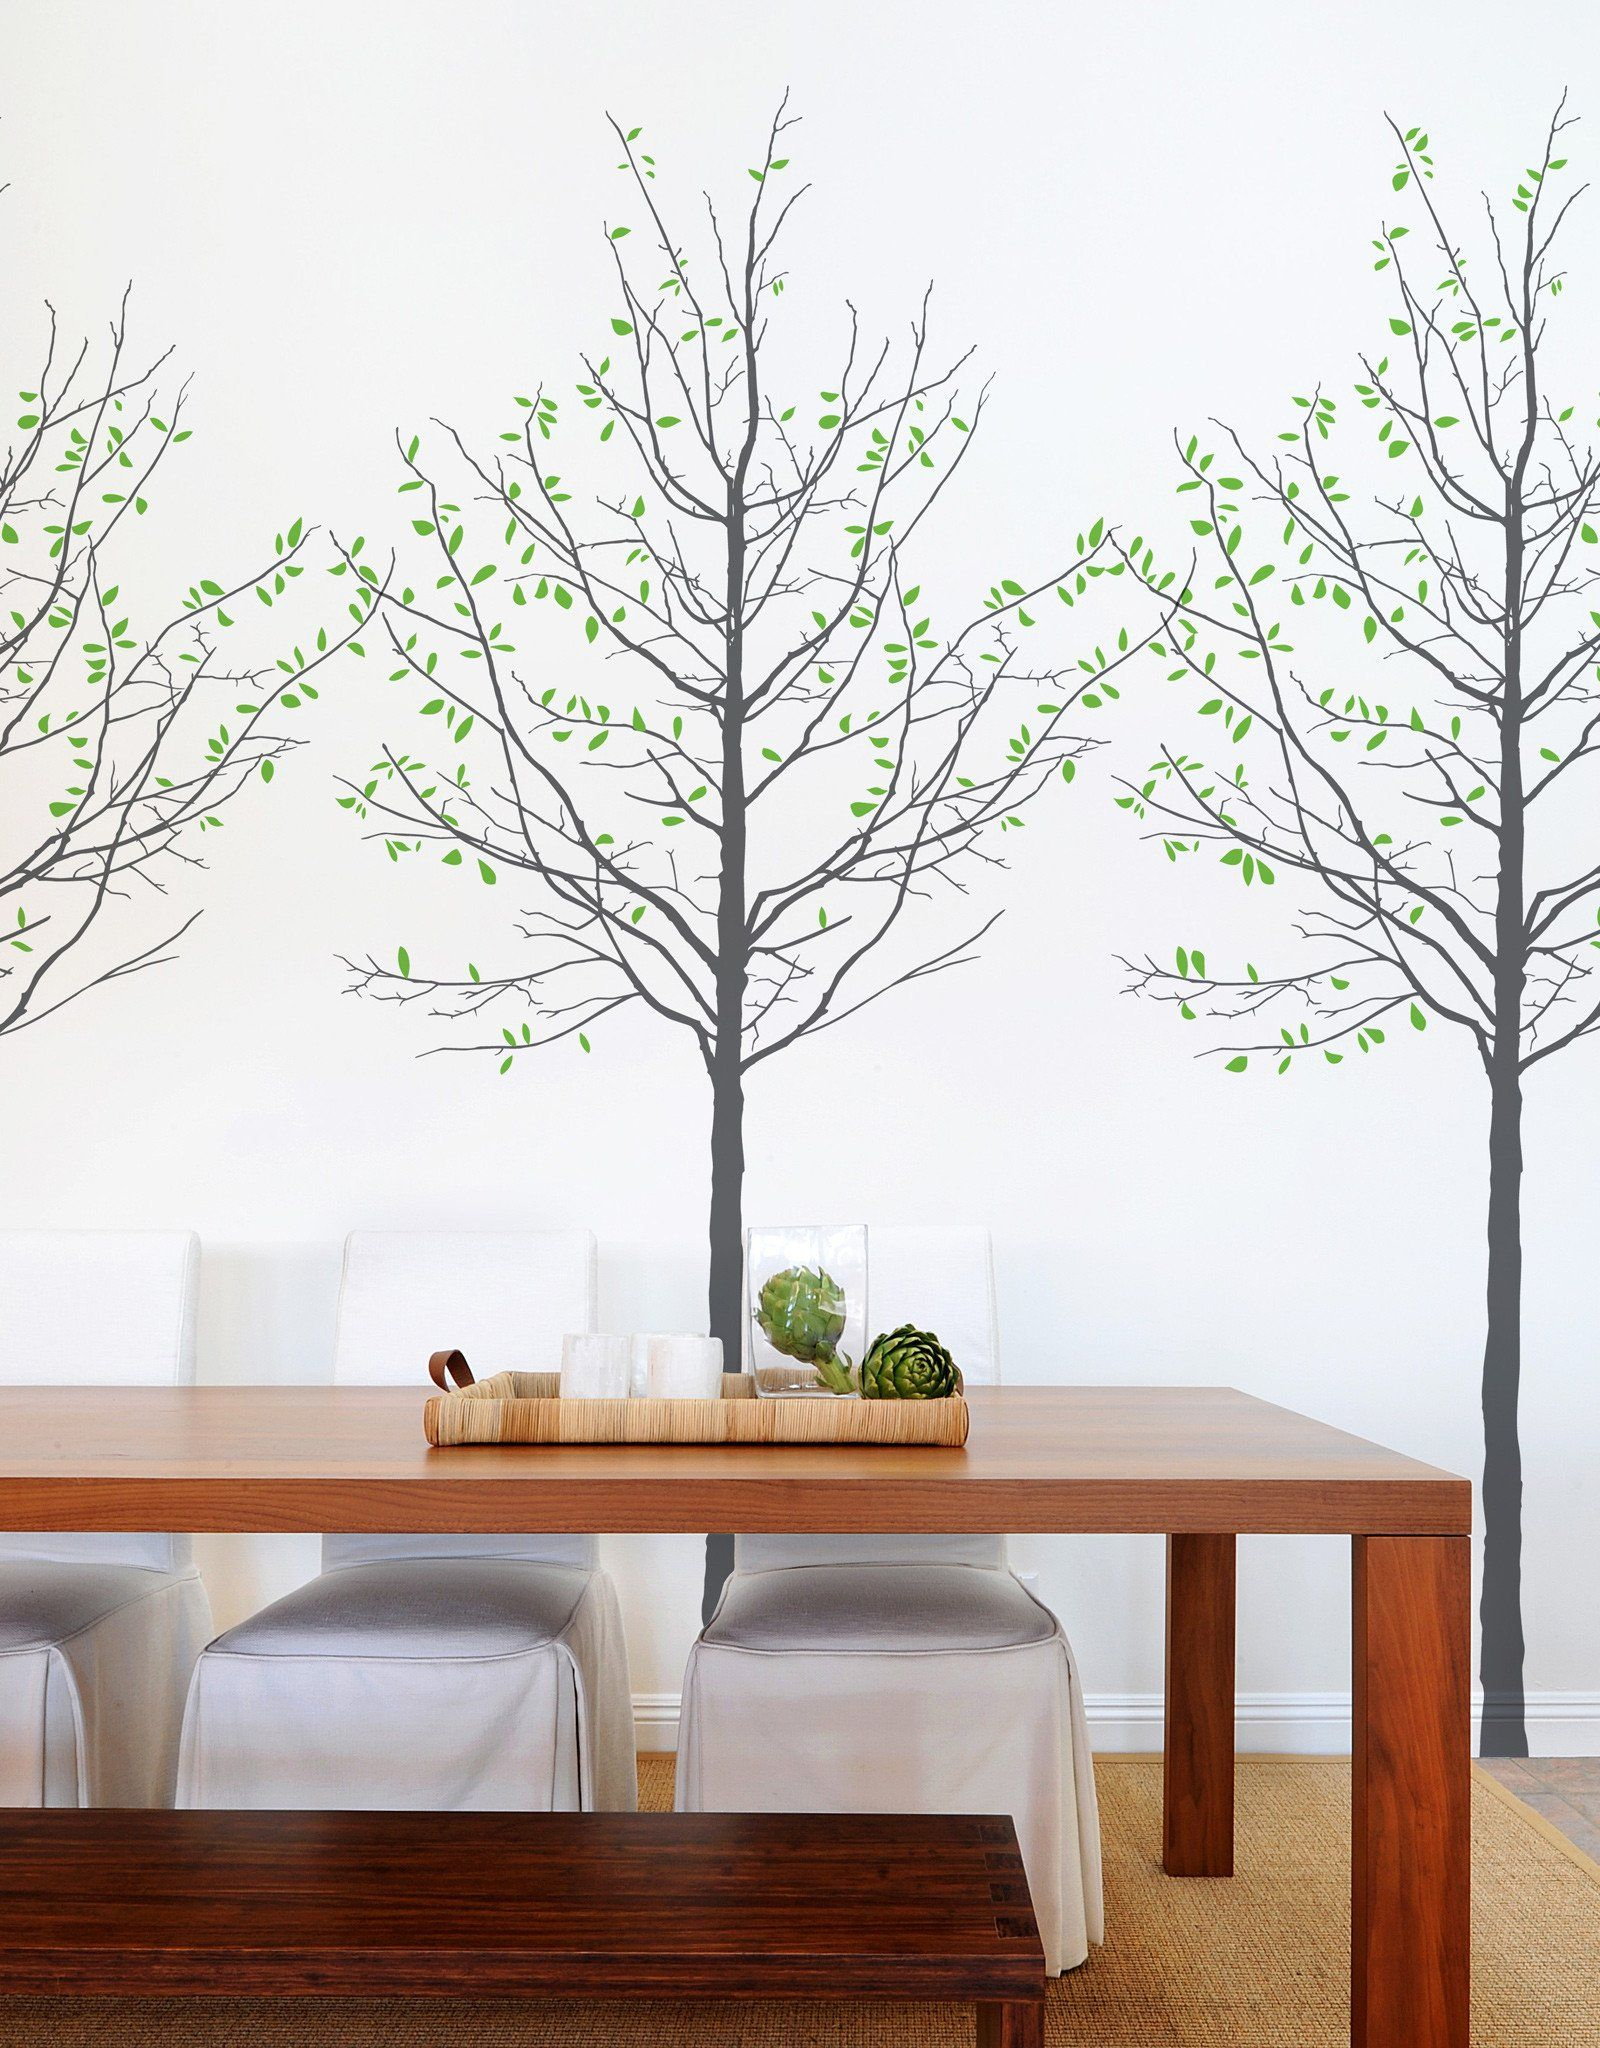 Seasons Wall decals, Wall stickers, Tree branch decor